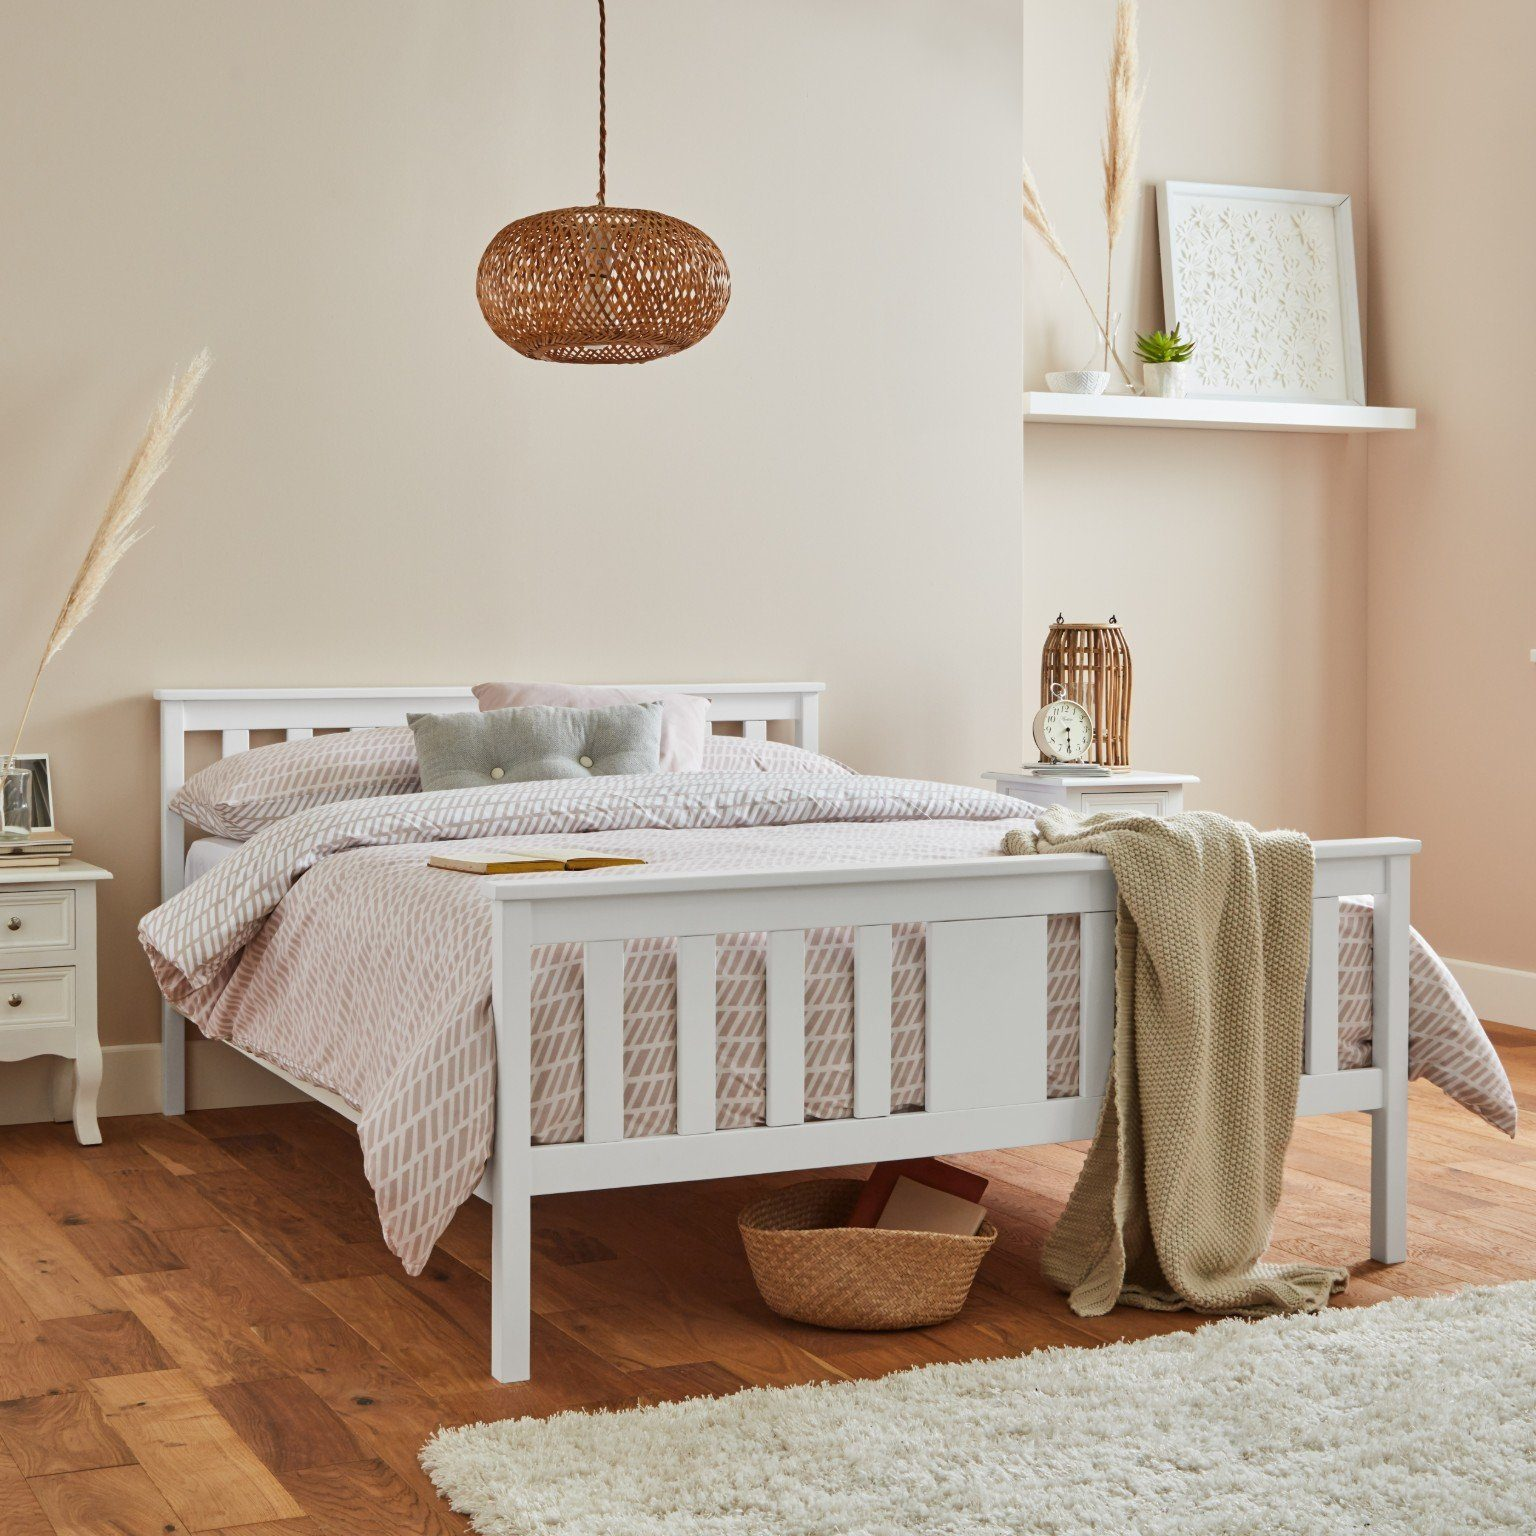 White wooden king size bed frame - Laura James